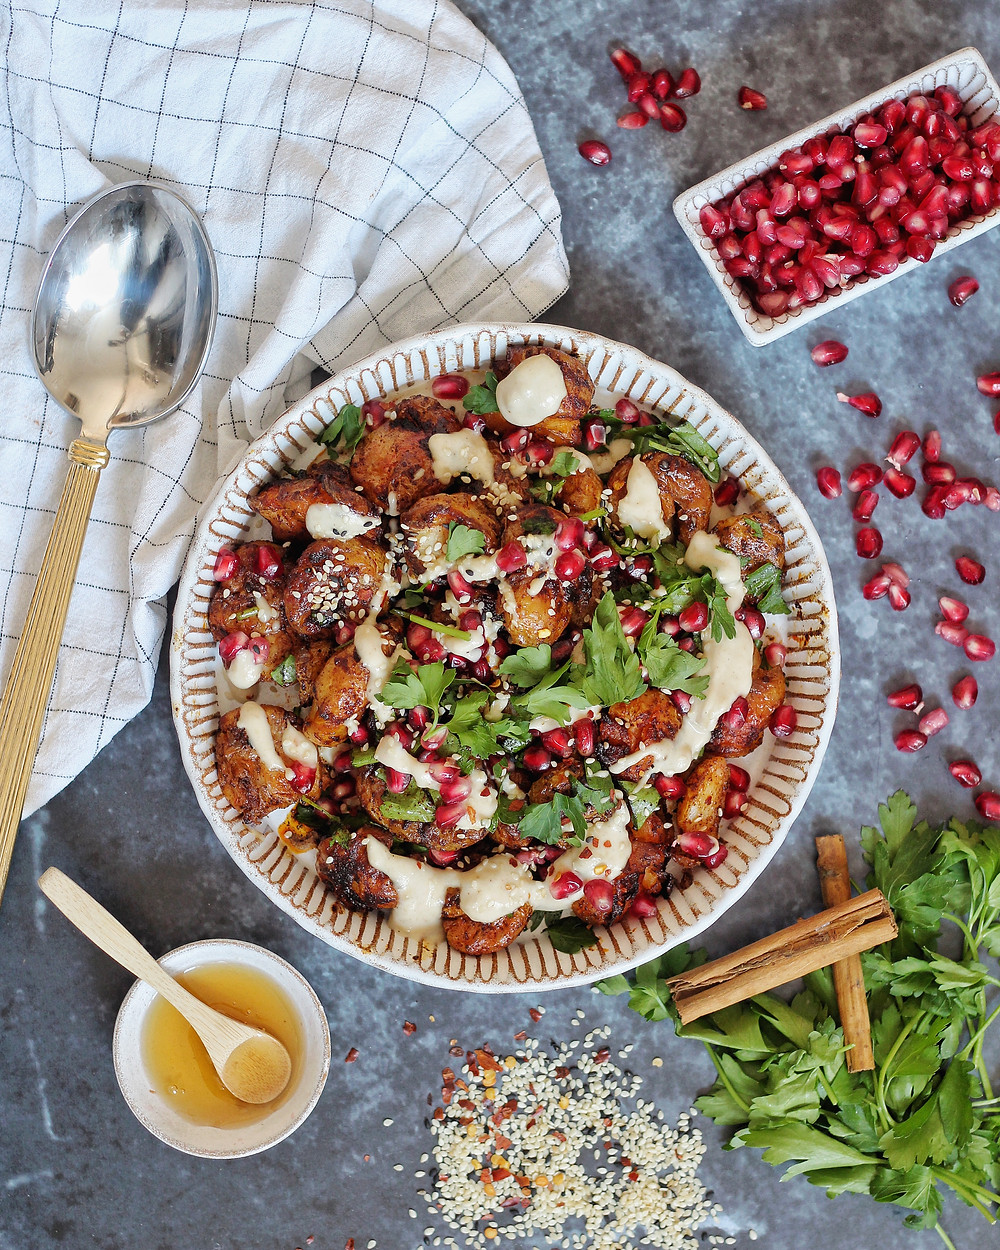 Delicious smashed potatoes with hot honey and tahini